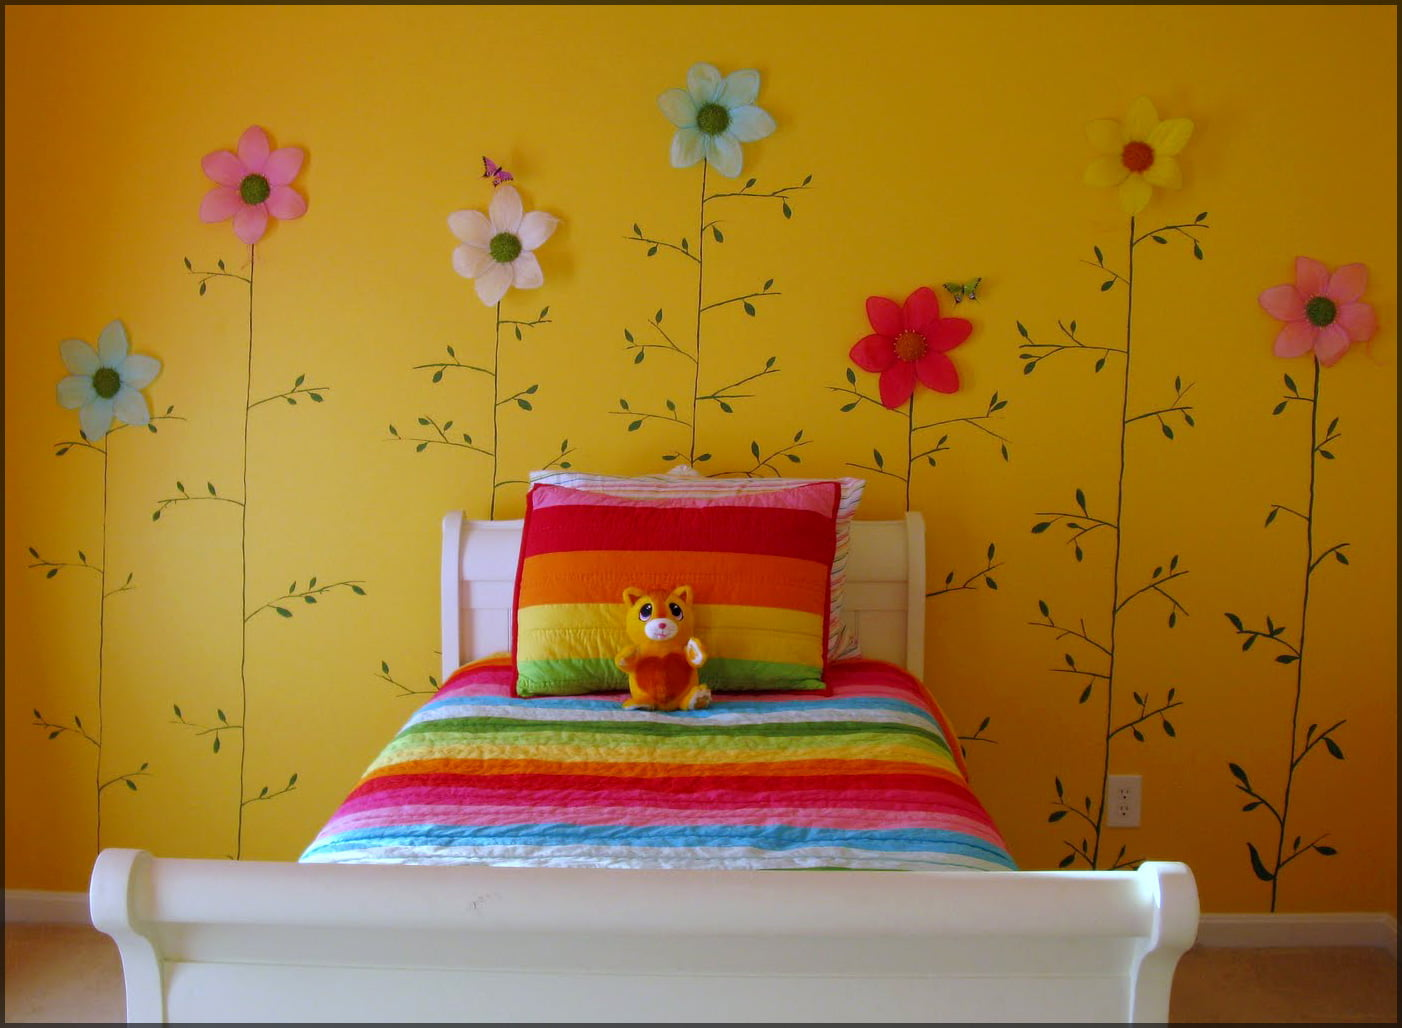 interior-beautiful-orange-wallpaper-scheme-color-with-decorative-emroidered-flower-decor-and-rainbow-theme-bed-sheet-best-choices-color-schemes-for-girls-bedrooms